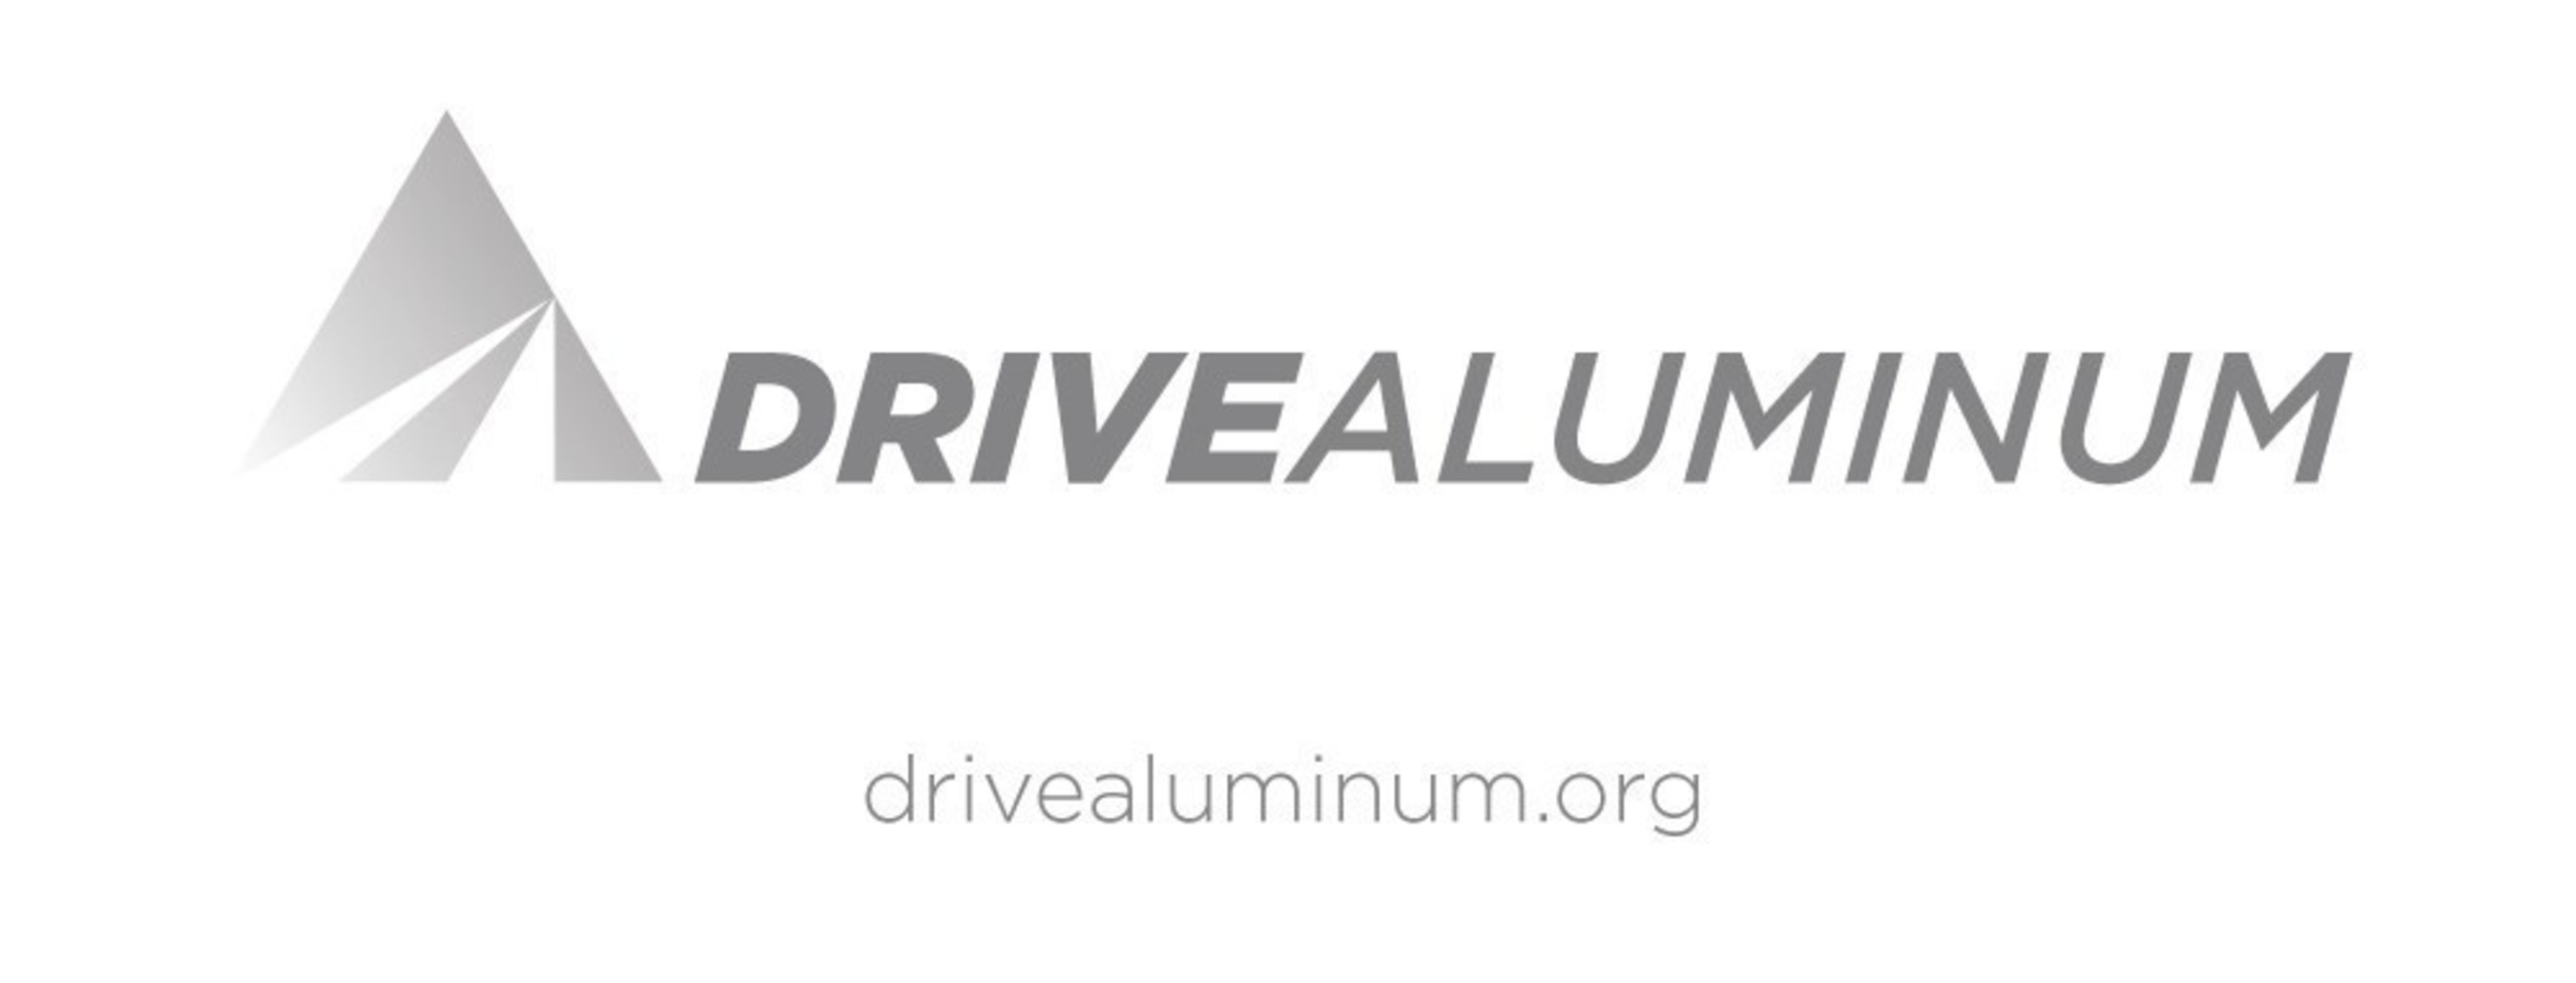 The Aluminum Association's Aluminum Transportation Group (ATG) communicates the benefits of aluminum in transportation applications to help accelerate its penetration through research programs and related outreach activities. The ATG promotes research and programs that highlight the positive efficiency, safety, durability, vehicle performance and environmental benefits of the metal, as well as its increasing growth in transportation applications.